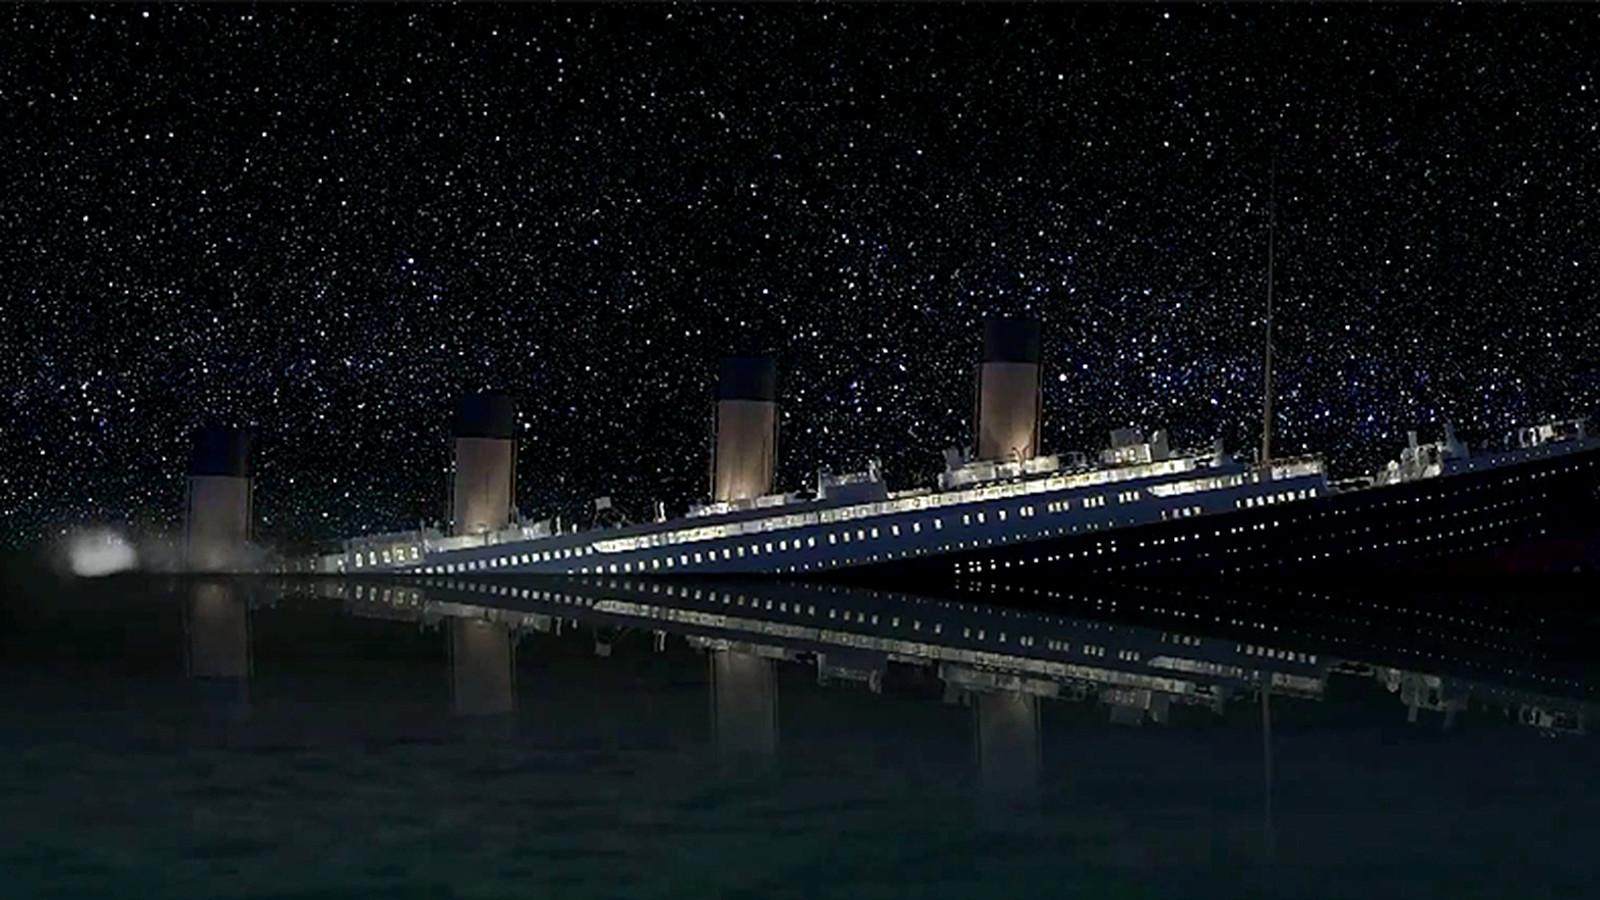 3d Clock Wallpaper Titanic Game Will Allow You To Explore The Ship As It